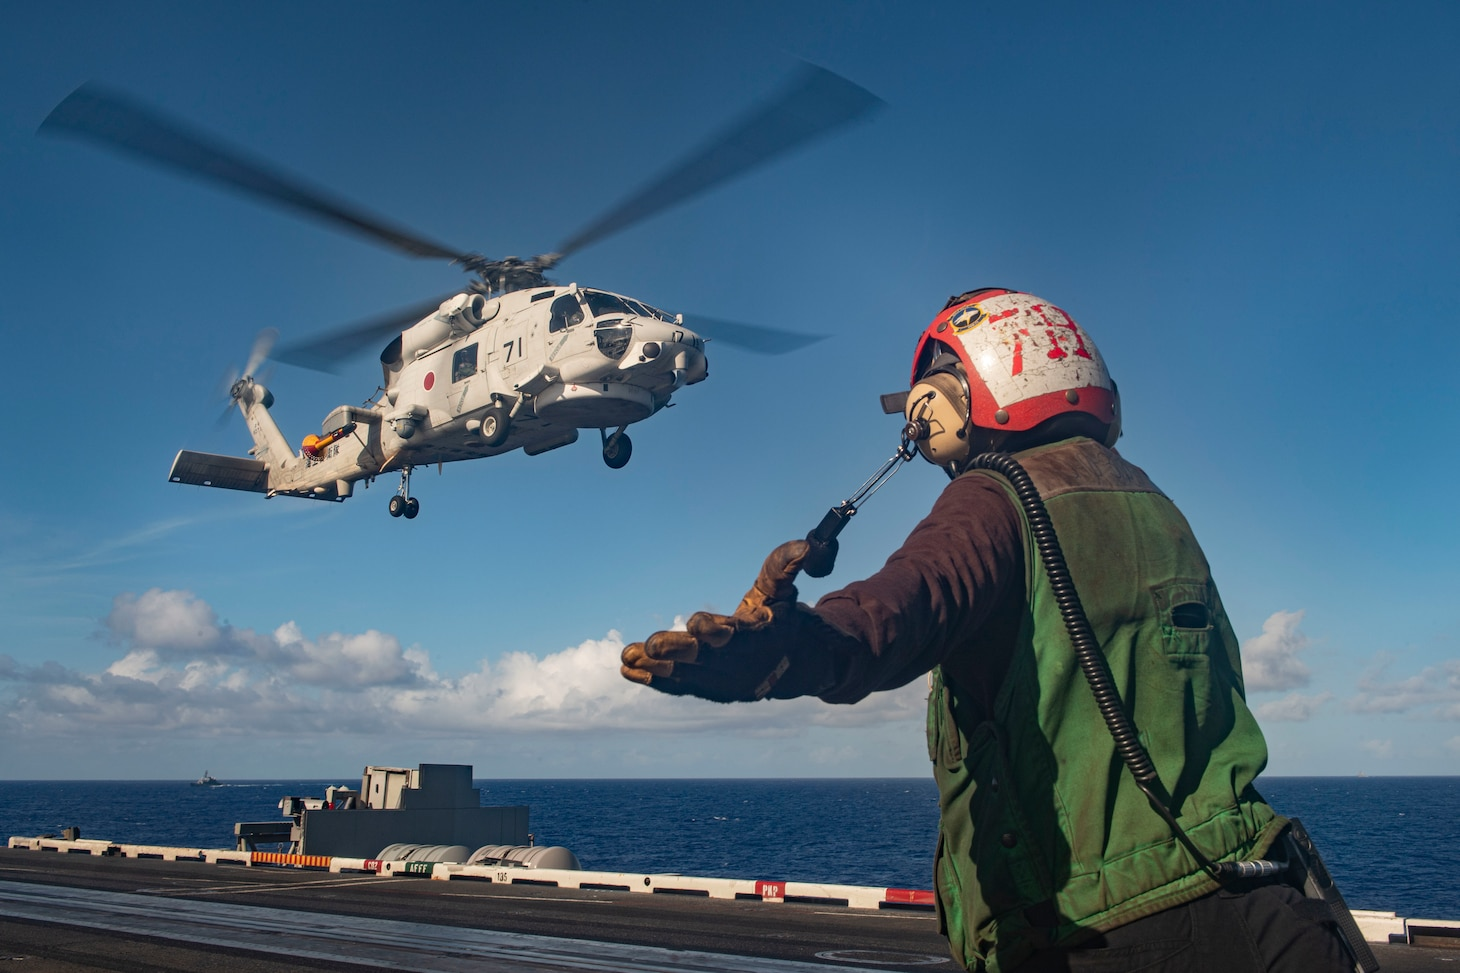 PACIFIC OCEAN (Feb 28, 2021) – U.S. Navy Airman Alexis Neff, from Jacksonville, Fla., directs the pilot of a Japan Maritime Self-Defense Force (JMSDF) MH-60 Sea Hawk to land on the flight deck of the aircraft carrier USS Theodore Roosevelt (CVN 71) Feb. 28, 2021. The Theodore Roosevelt Carrier Strike Group is on a scheduled deployment to the U.S. 7th Fleet area of operations. As the U.S. Navy's largest forward-deployed fleet, 7th Fleet routinely operates and interacts with 35 maritime nations while conducting missions to preserve and protect a free and open Indo-Pacific Region. (U.S. Navy photo by Mass Communication Specialist 3rd Class Erik Melgar)